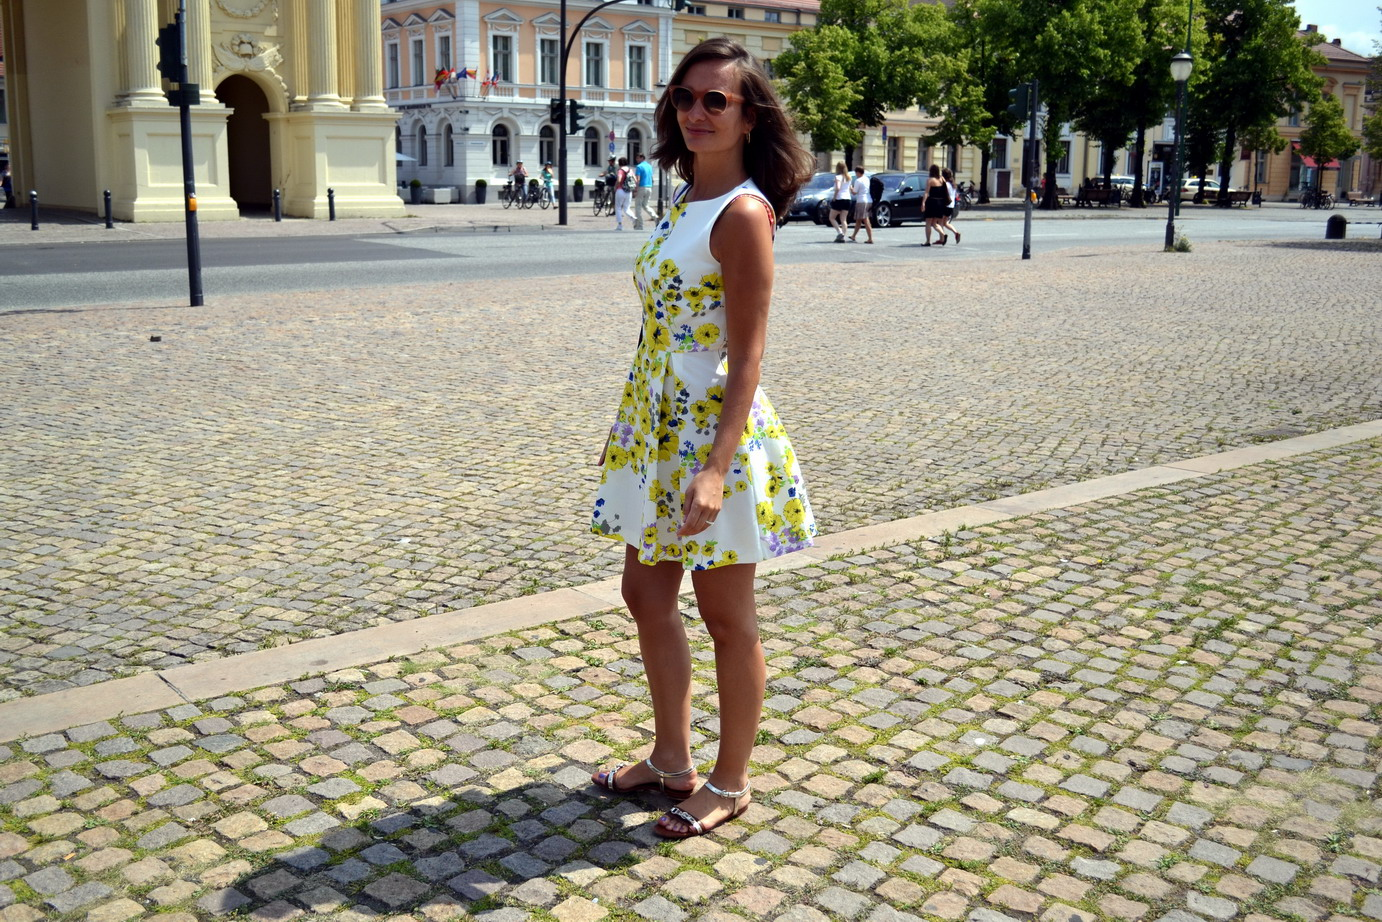 For the lovely summer day in Potsdam I am wearing a yellow floral dress from Max & Co and  sorbet coloured sunglasses from Celine